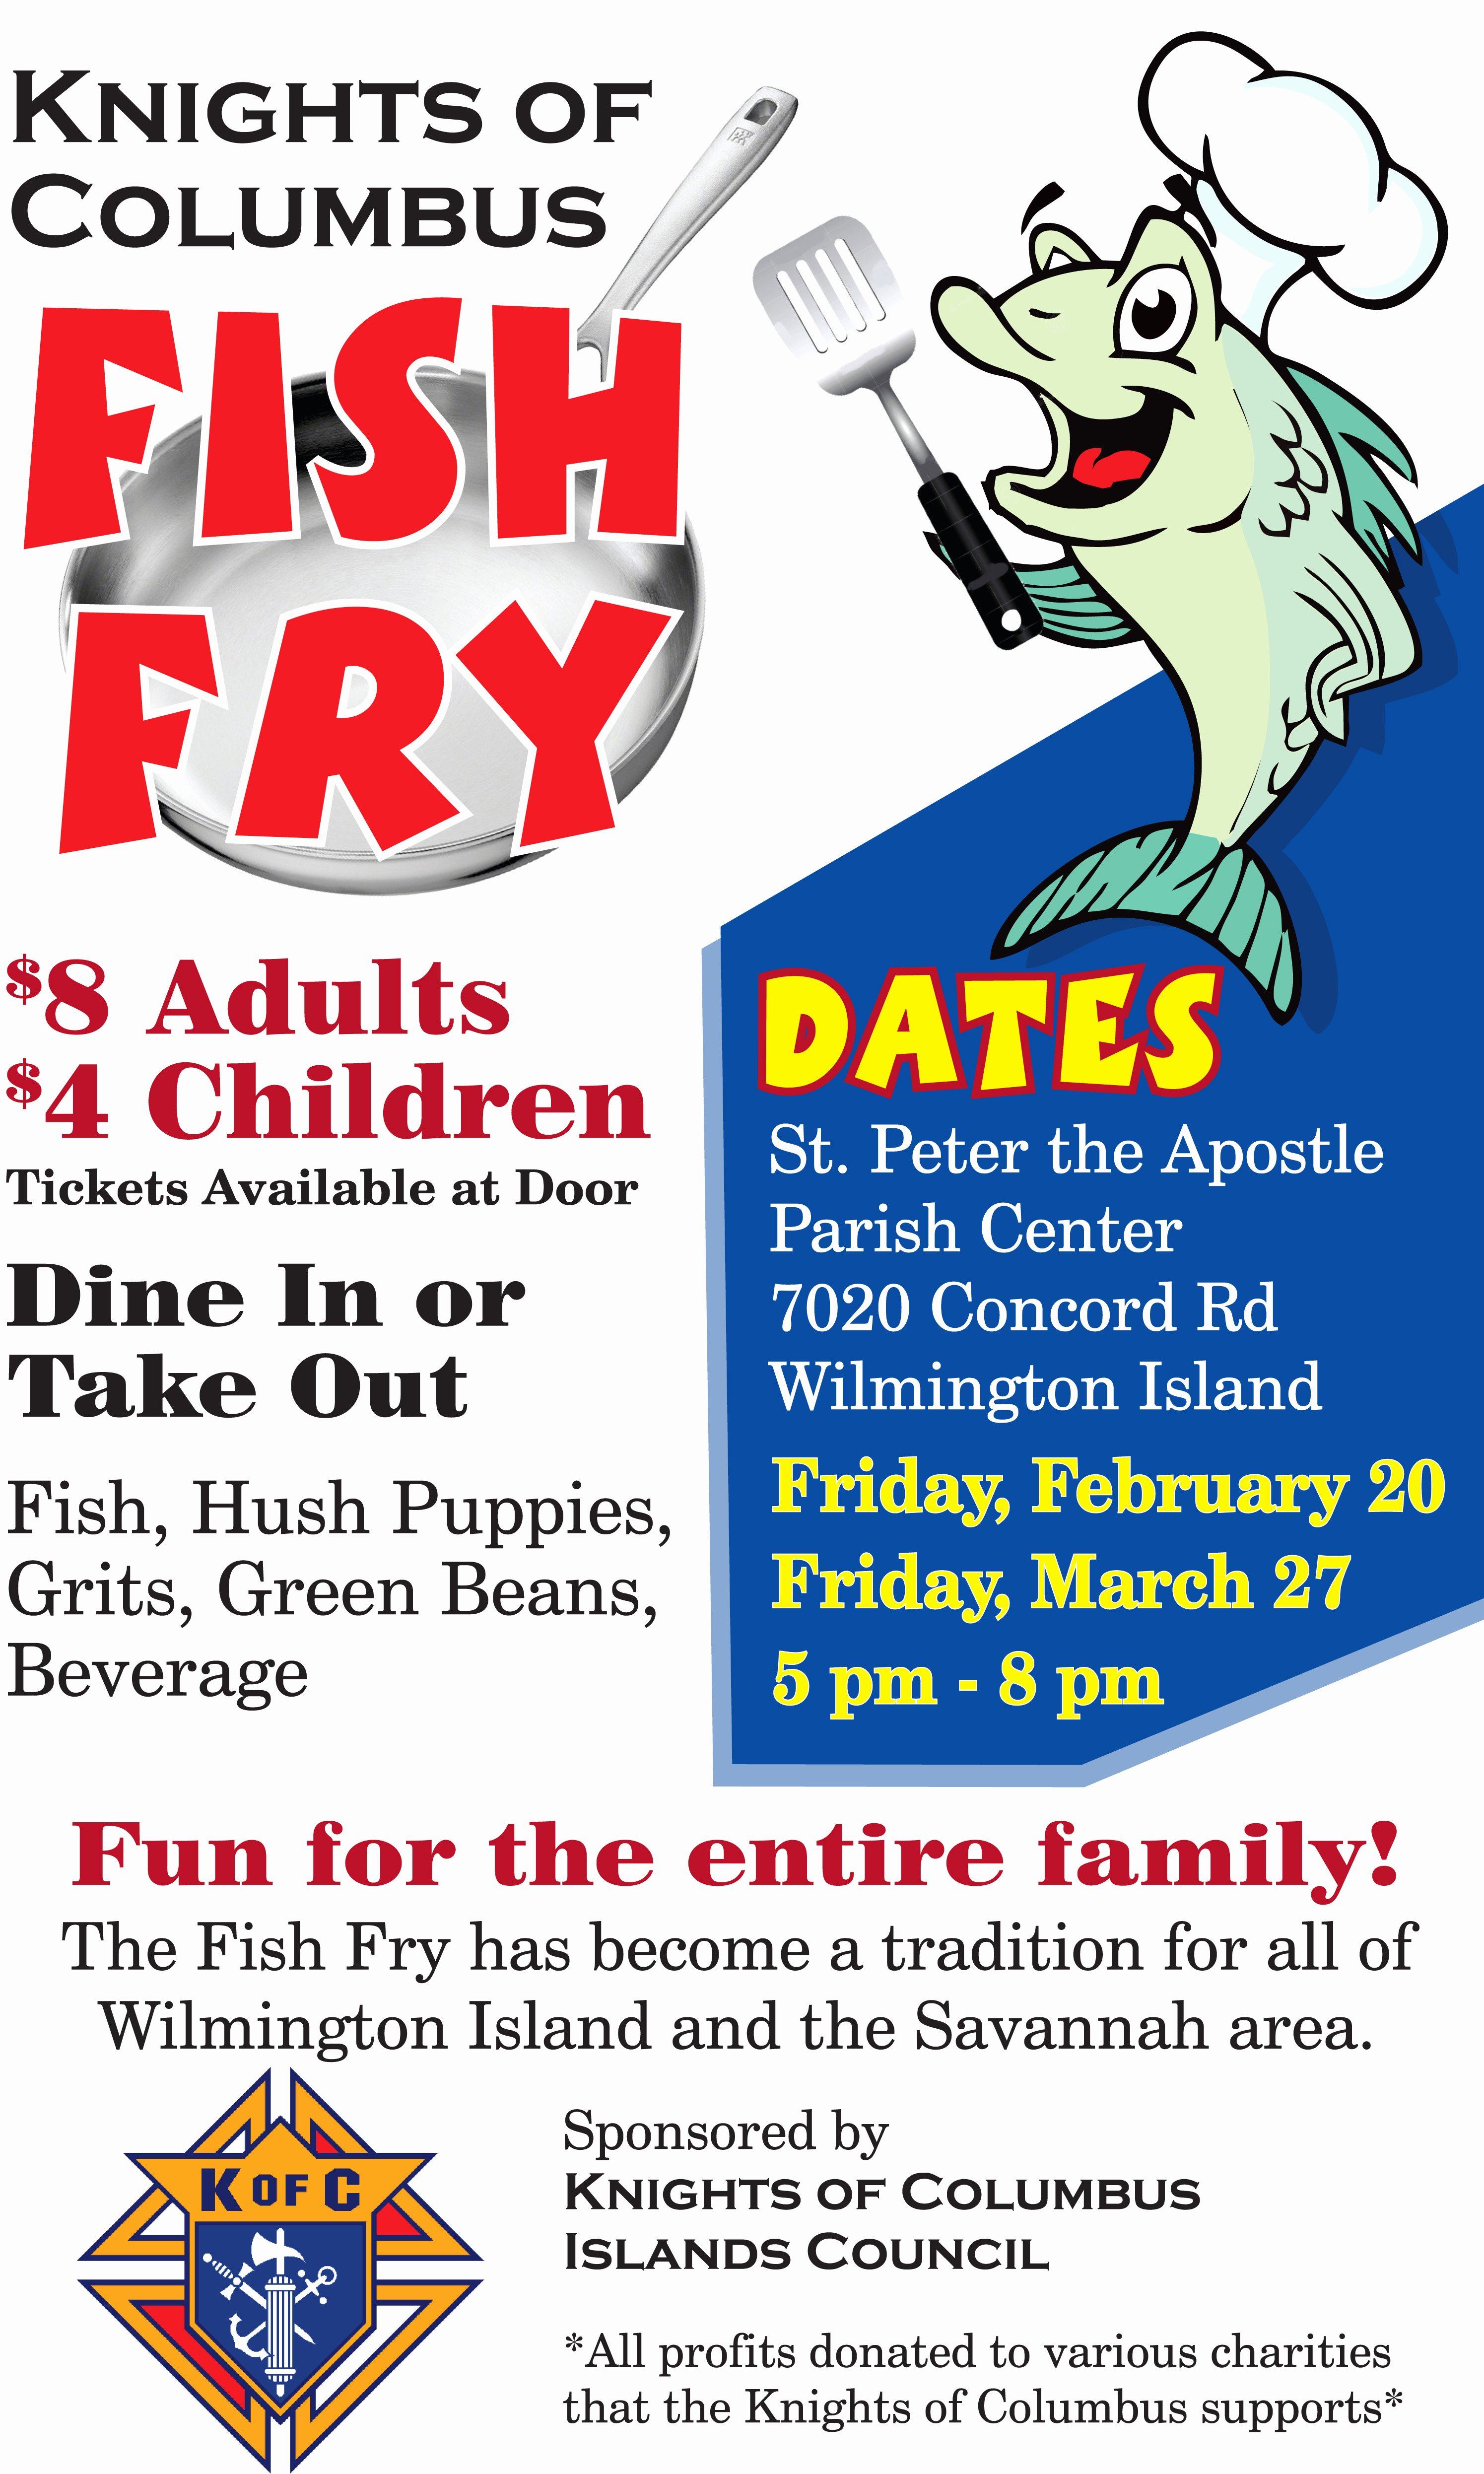 Fish Fry Flyer Template Awesome K Of C Lenten Fish Fry Saint Peter the Apostle Saint